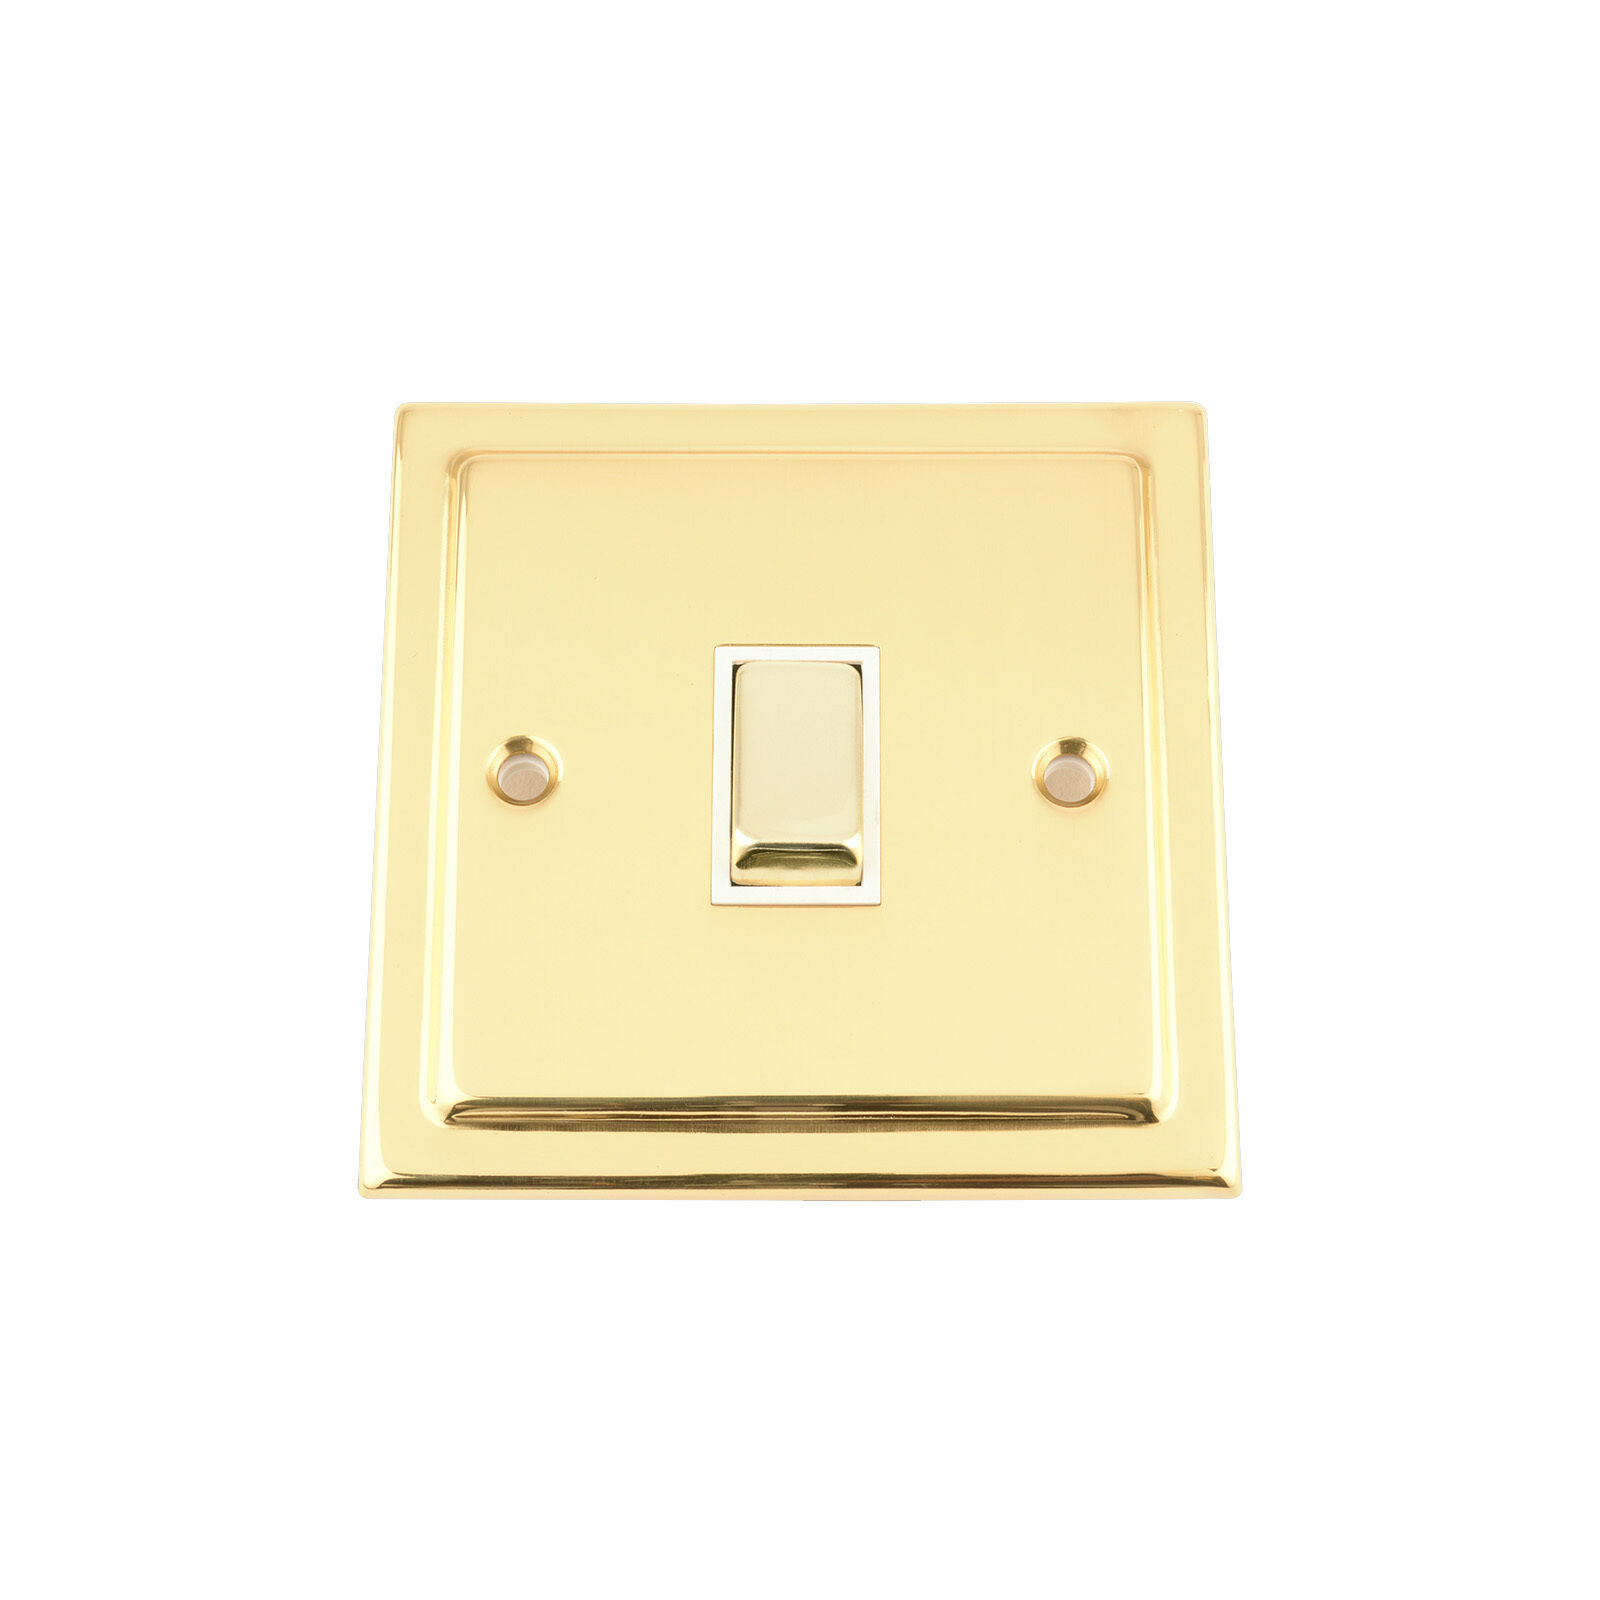 Light Switch Triple 3 Gang Victorian Polished Brass White Insert 2 Way Metal Rocker 10 Amp Unique Christmas Gifts